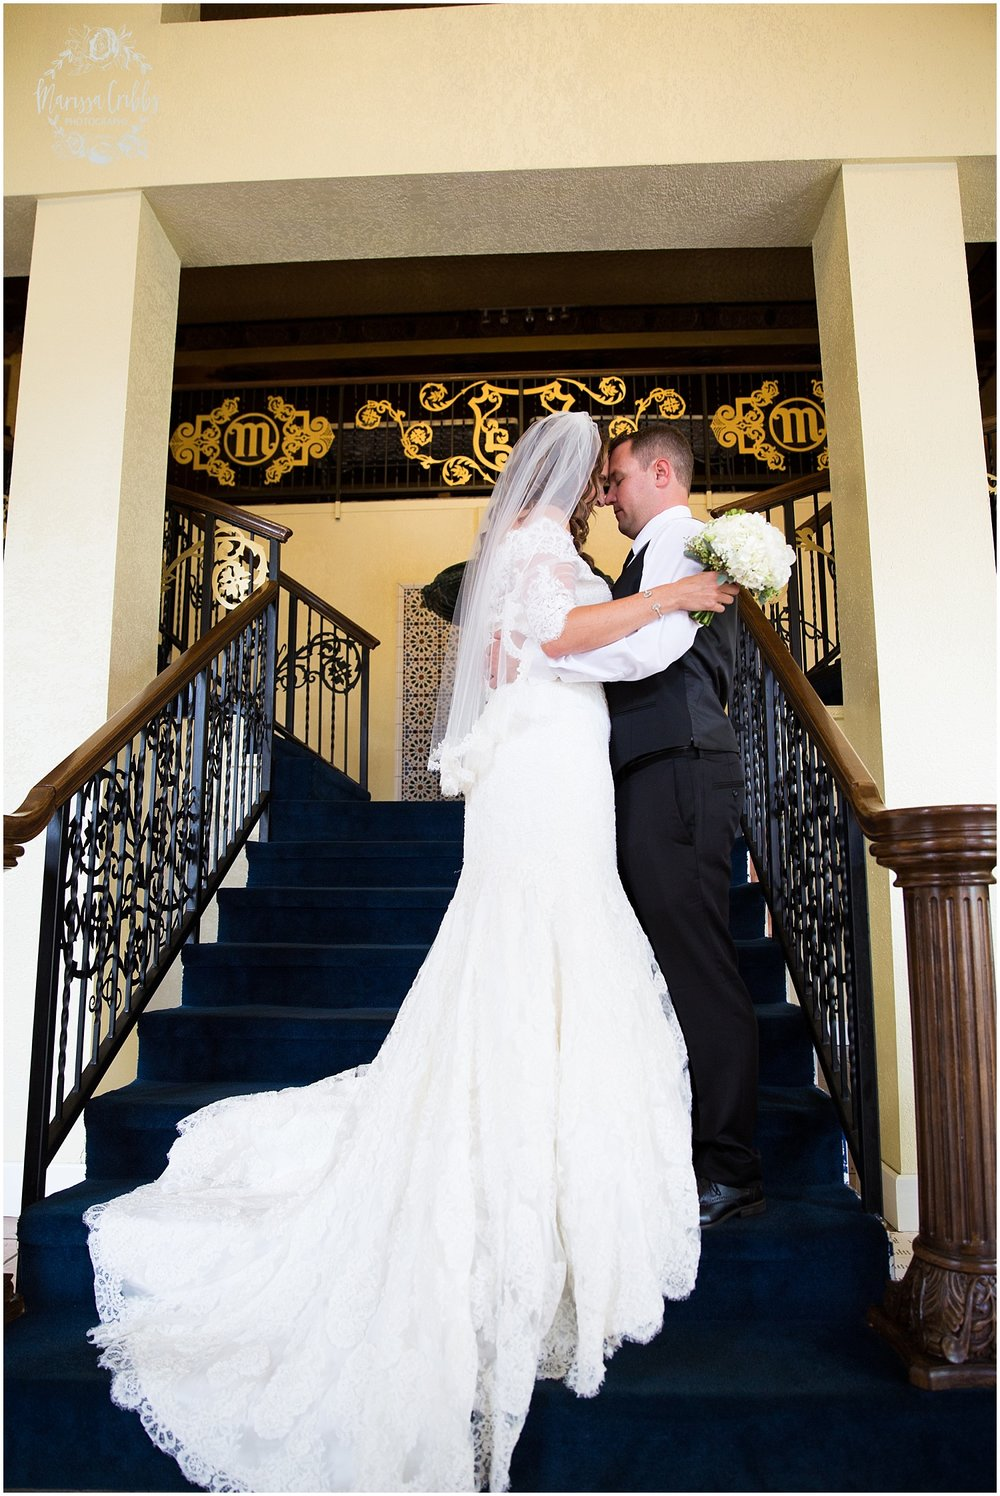 Madrid Theatre Wedding | Union Station | Liberty Memorial | KC Wedding Photographer | Marissa Cribbs Photography_0510.jpg